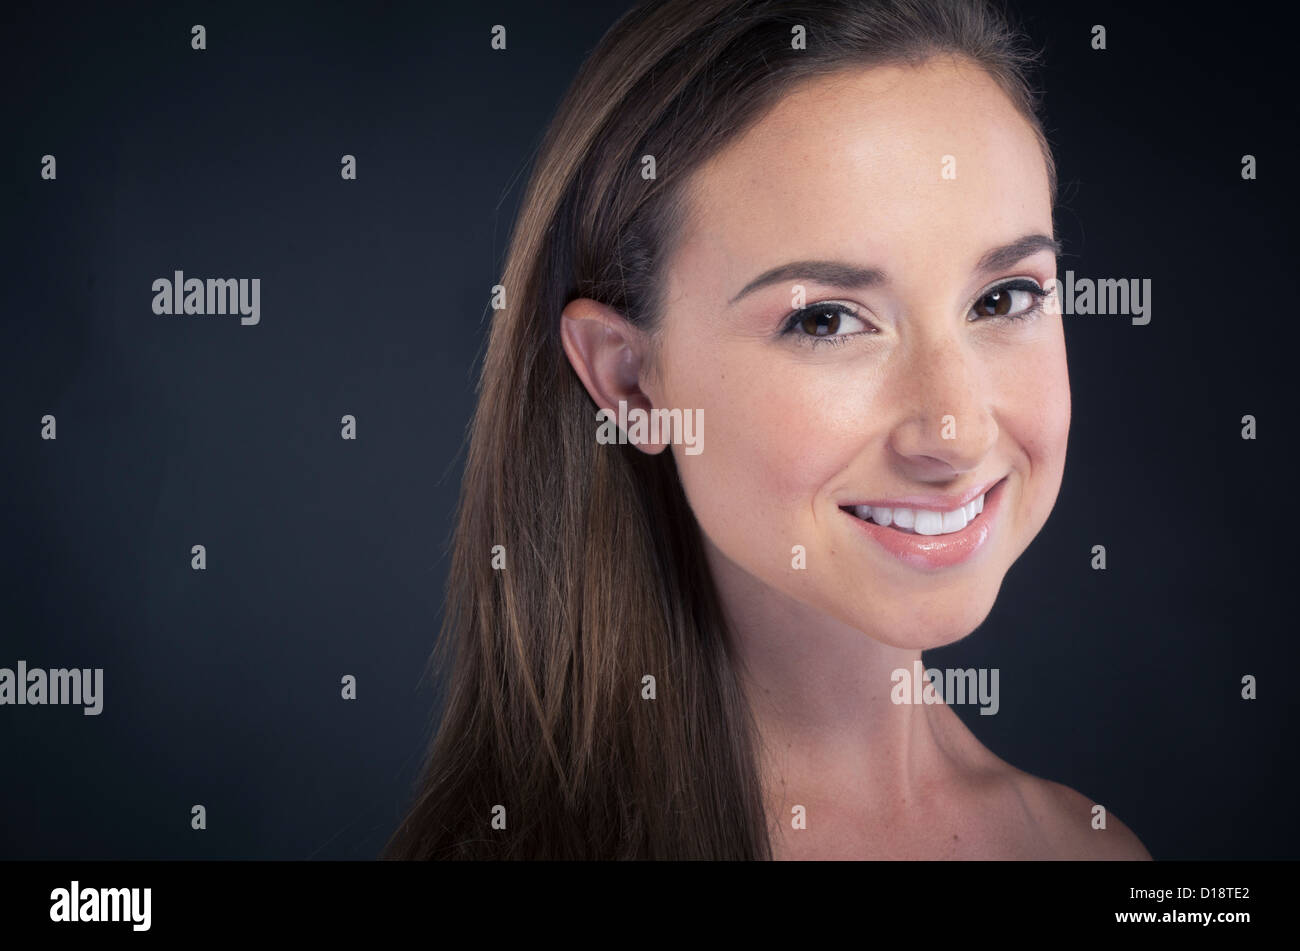 Young beautiful woman smiling on black background - Stock Image